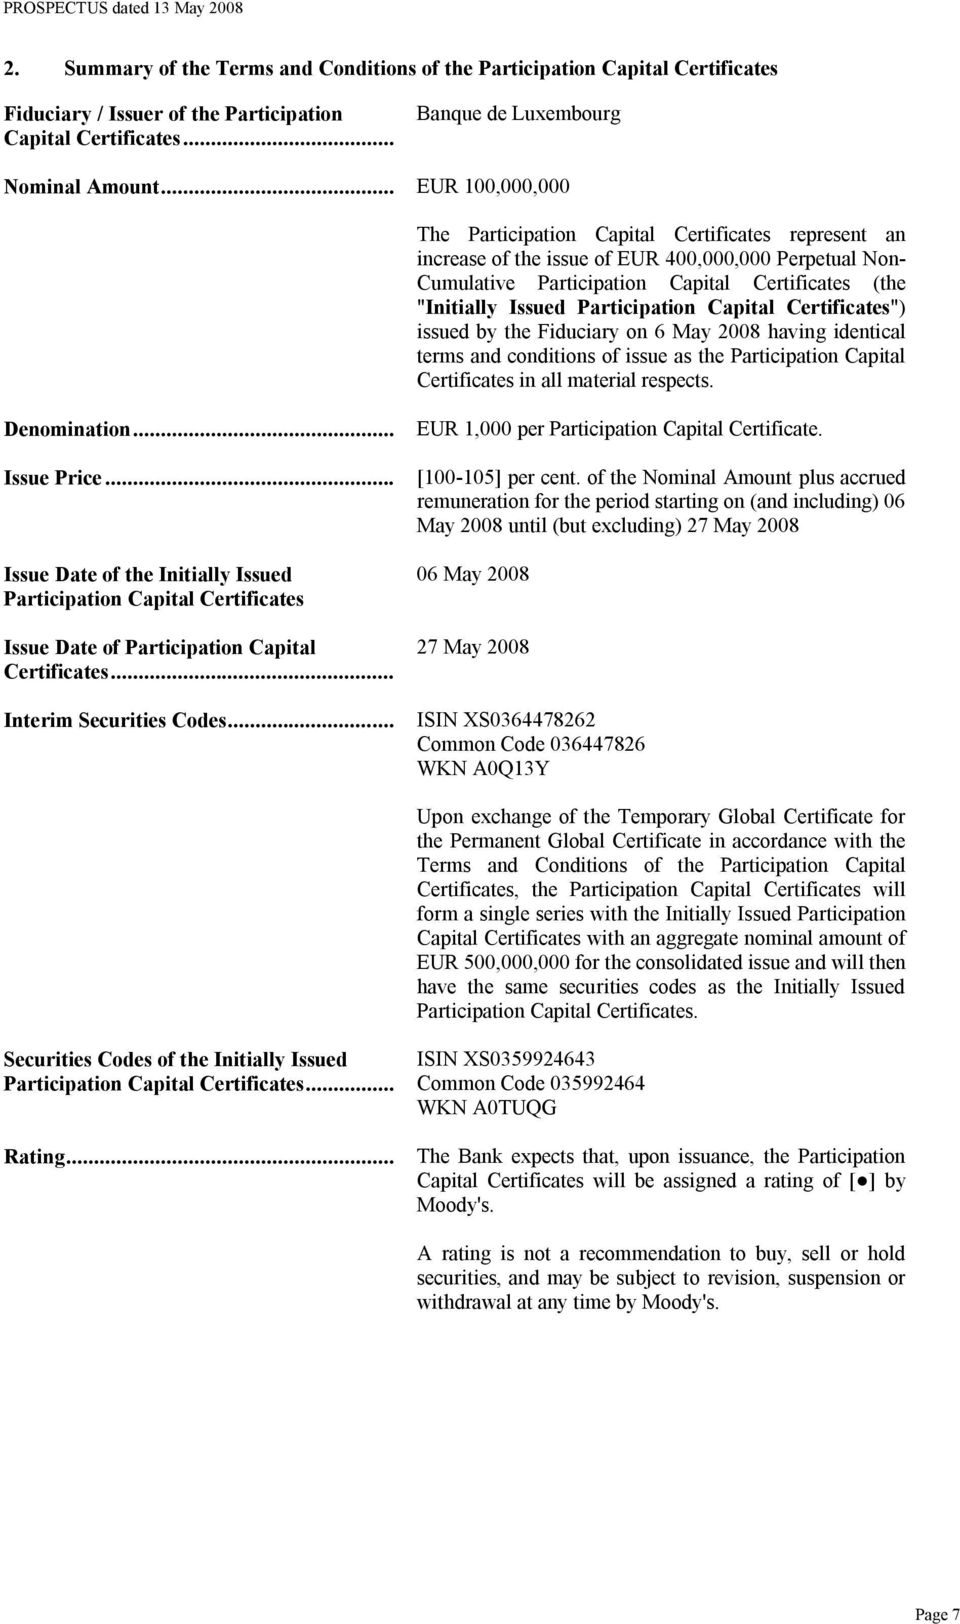 "Participation Capital Certificates"") issued by the Fiduciary on 6 May 2008 having identical terms and conditions of issue as the Participation Capital Certificates in all material respects."